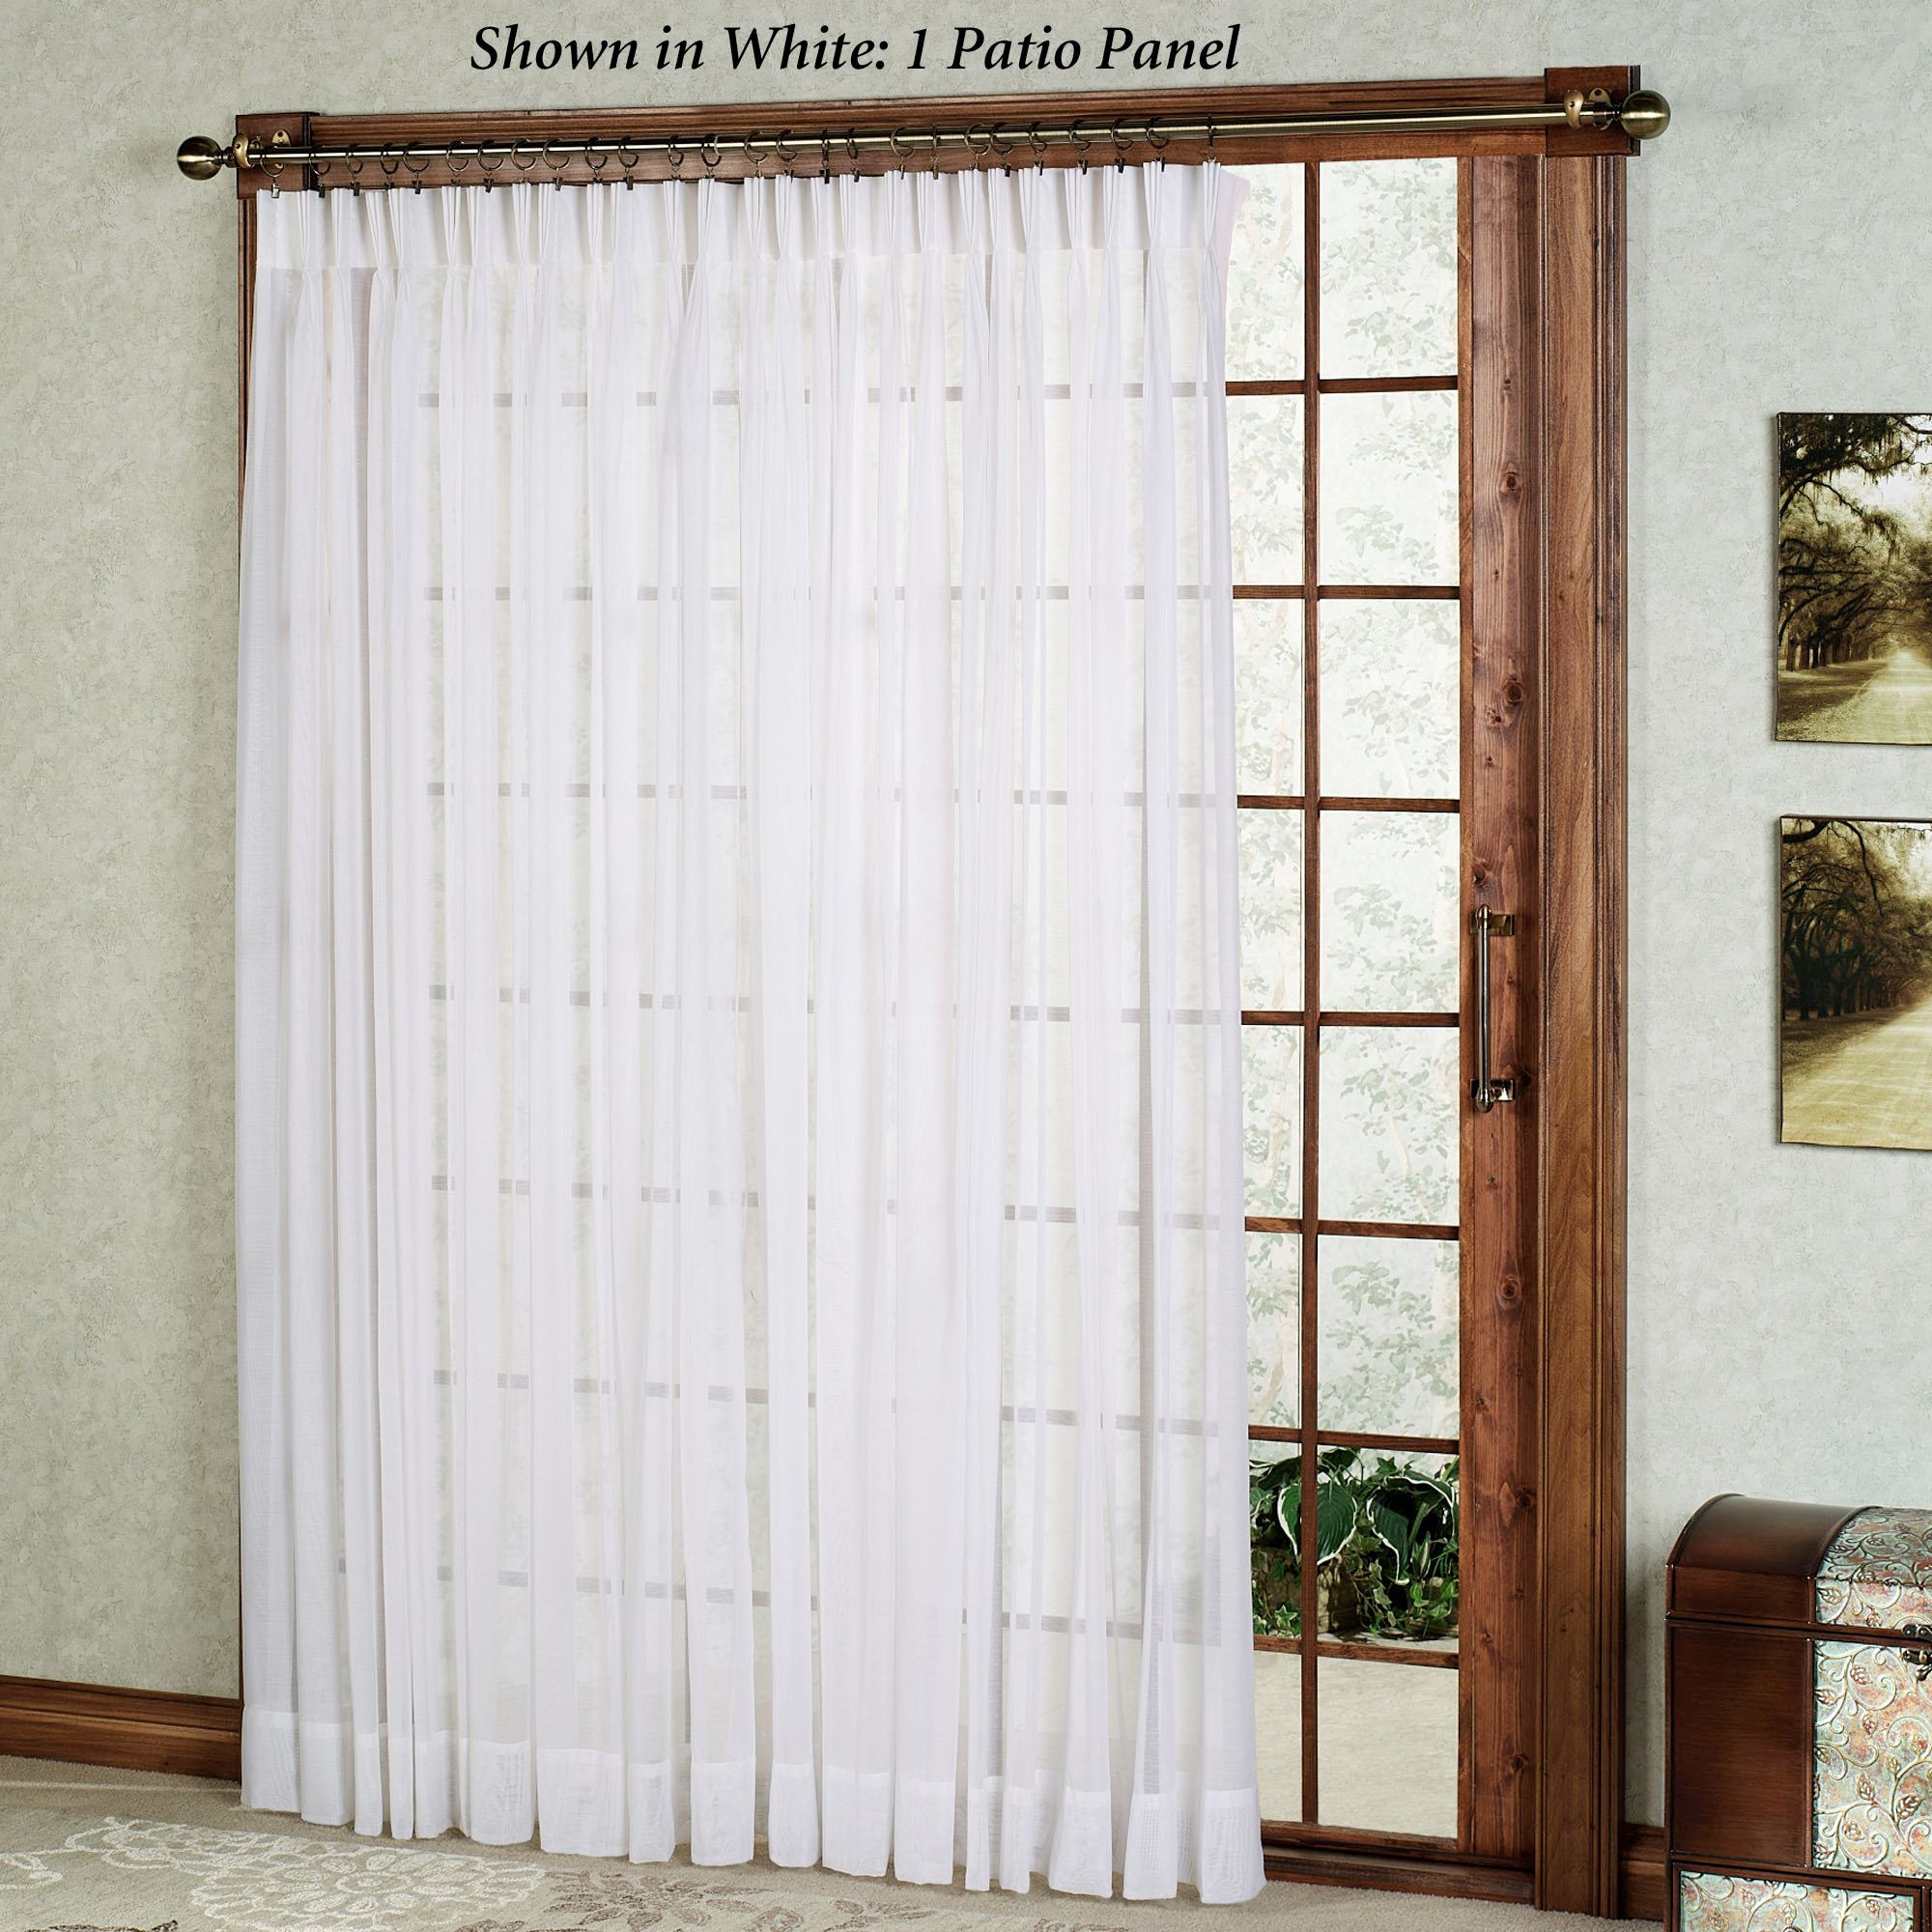 patio door curtains also door blinds curtains also extra wide patio drapes also window treatment ideas for sliding patio doors